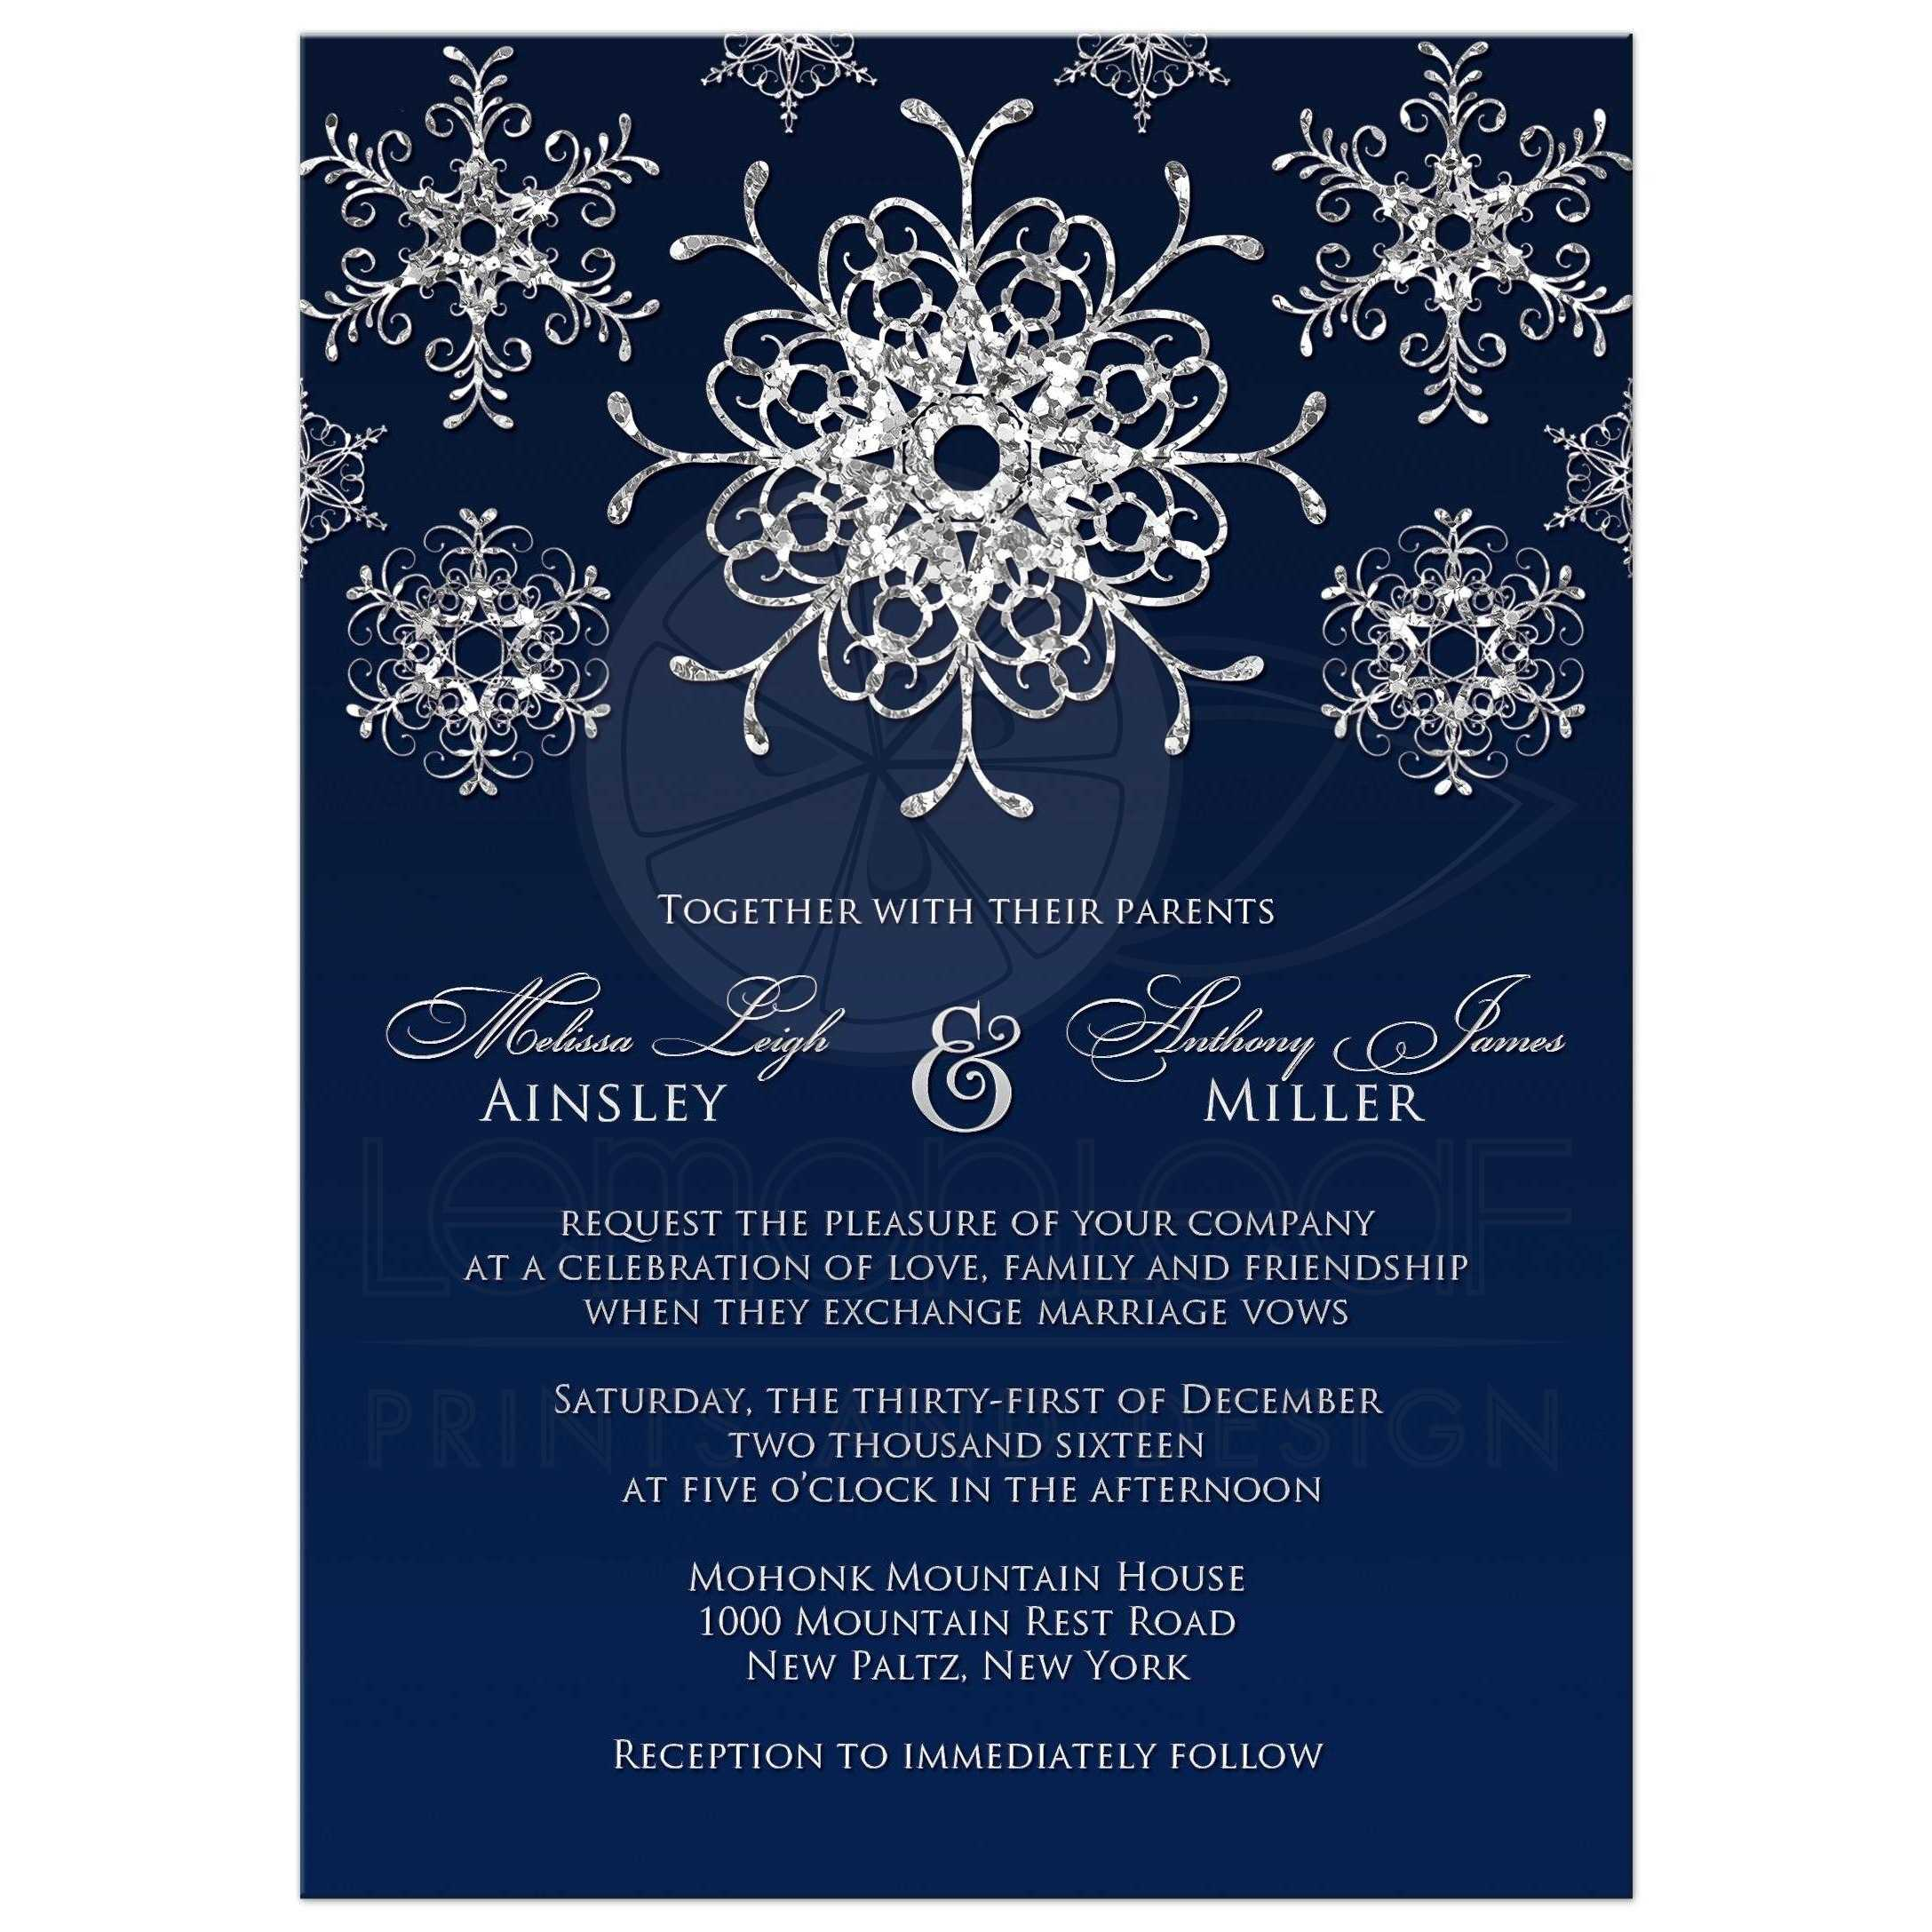 Best Winter Wonderland Wedding Invitation In Navy Blue And Silver Snowflakes Glitter